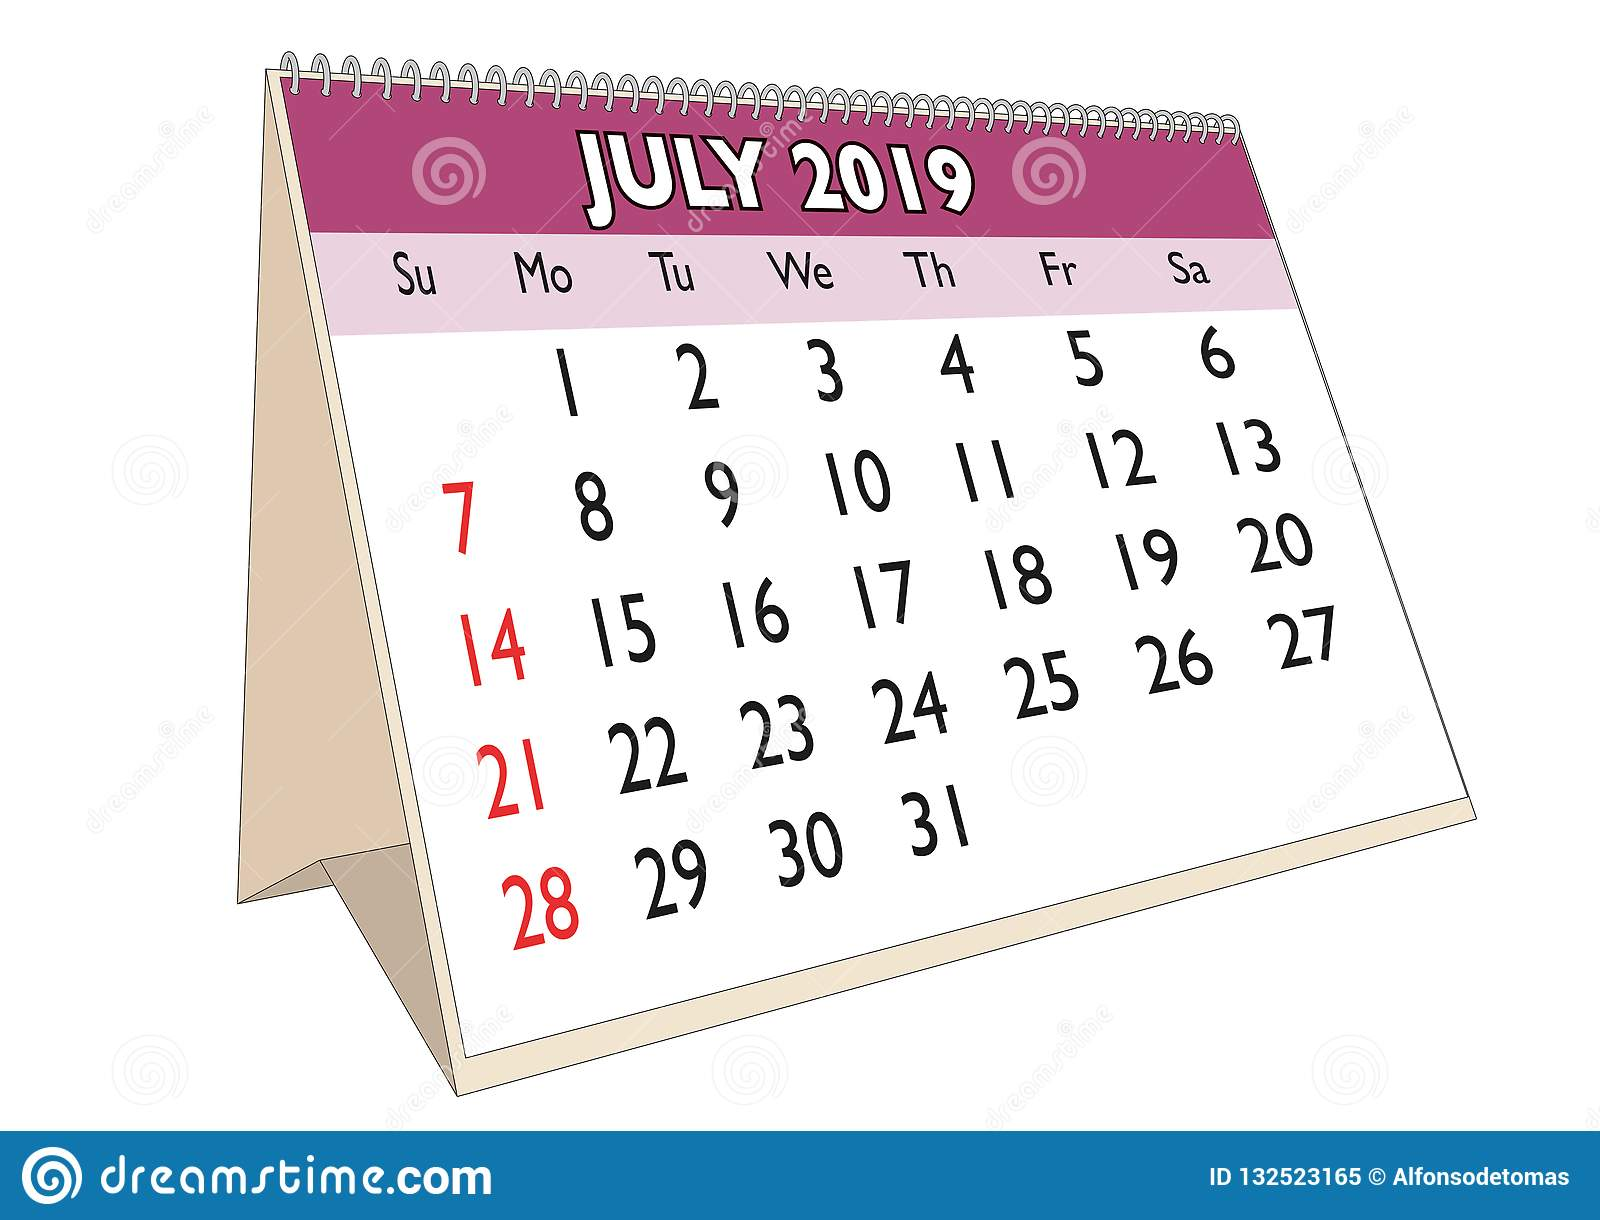 Calendario Julio 2019 Vector.Desk Calendar July 2019 Stock Vector Illustration Of July